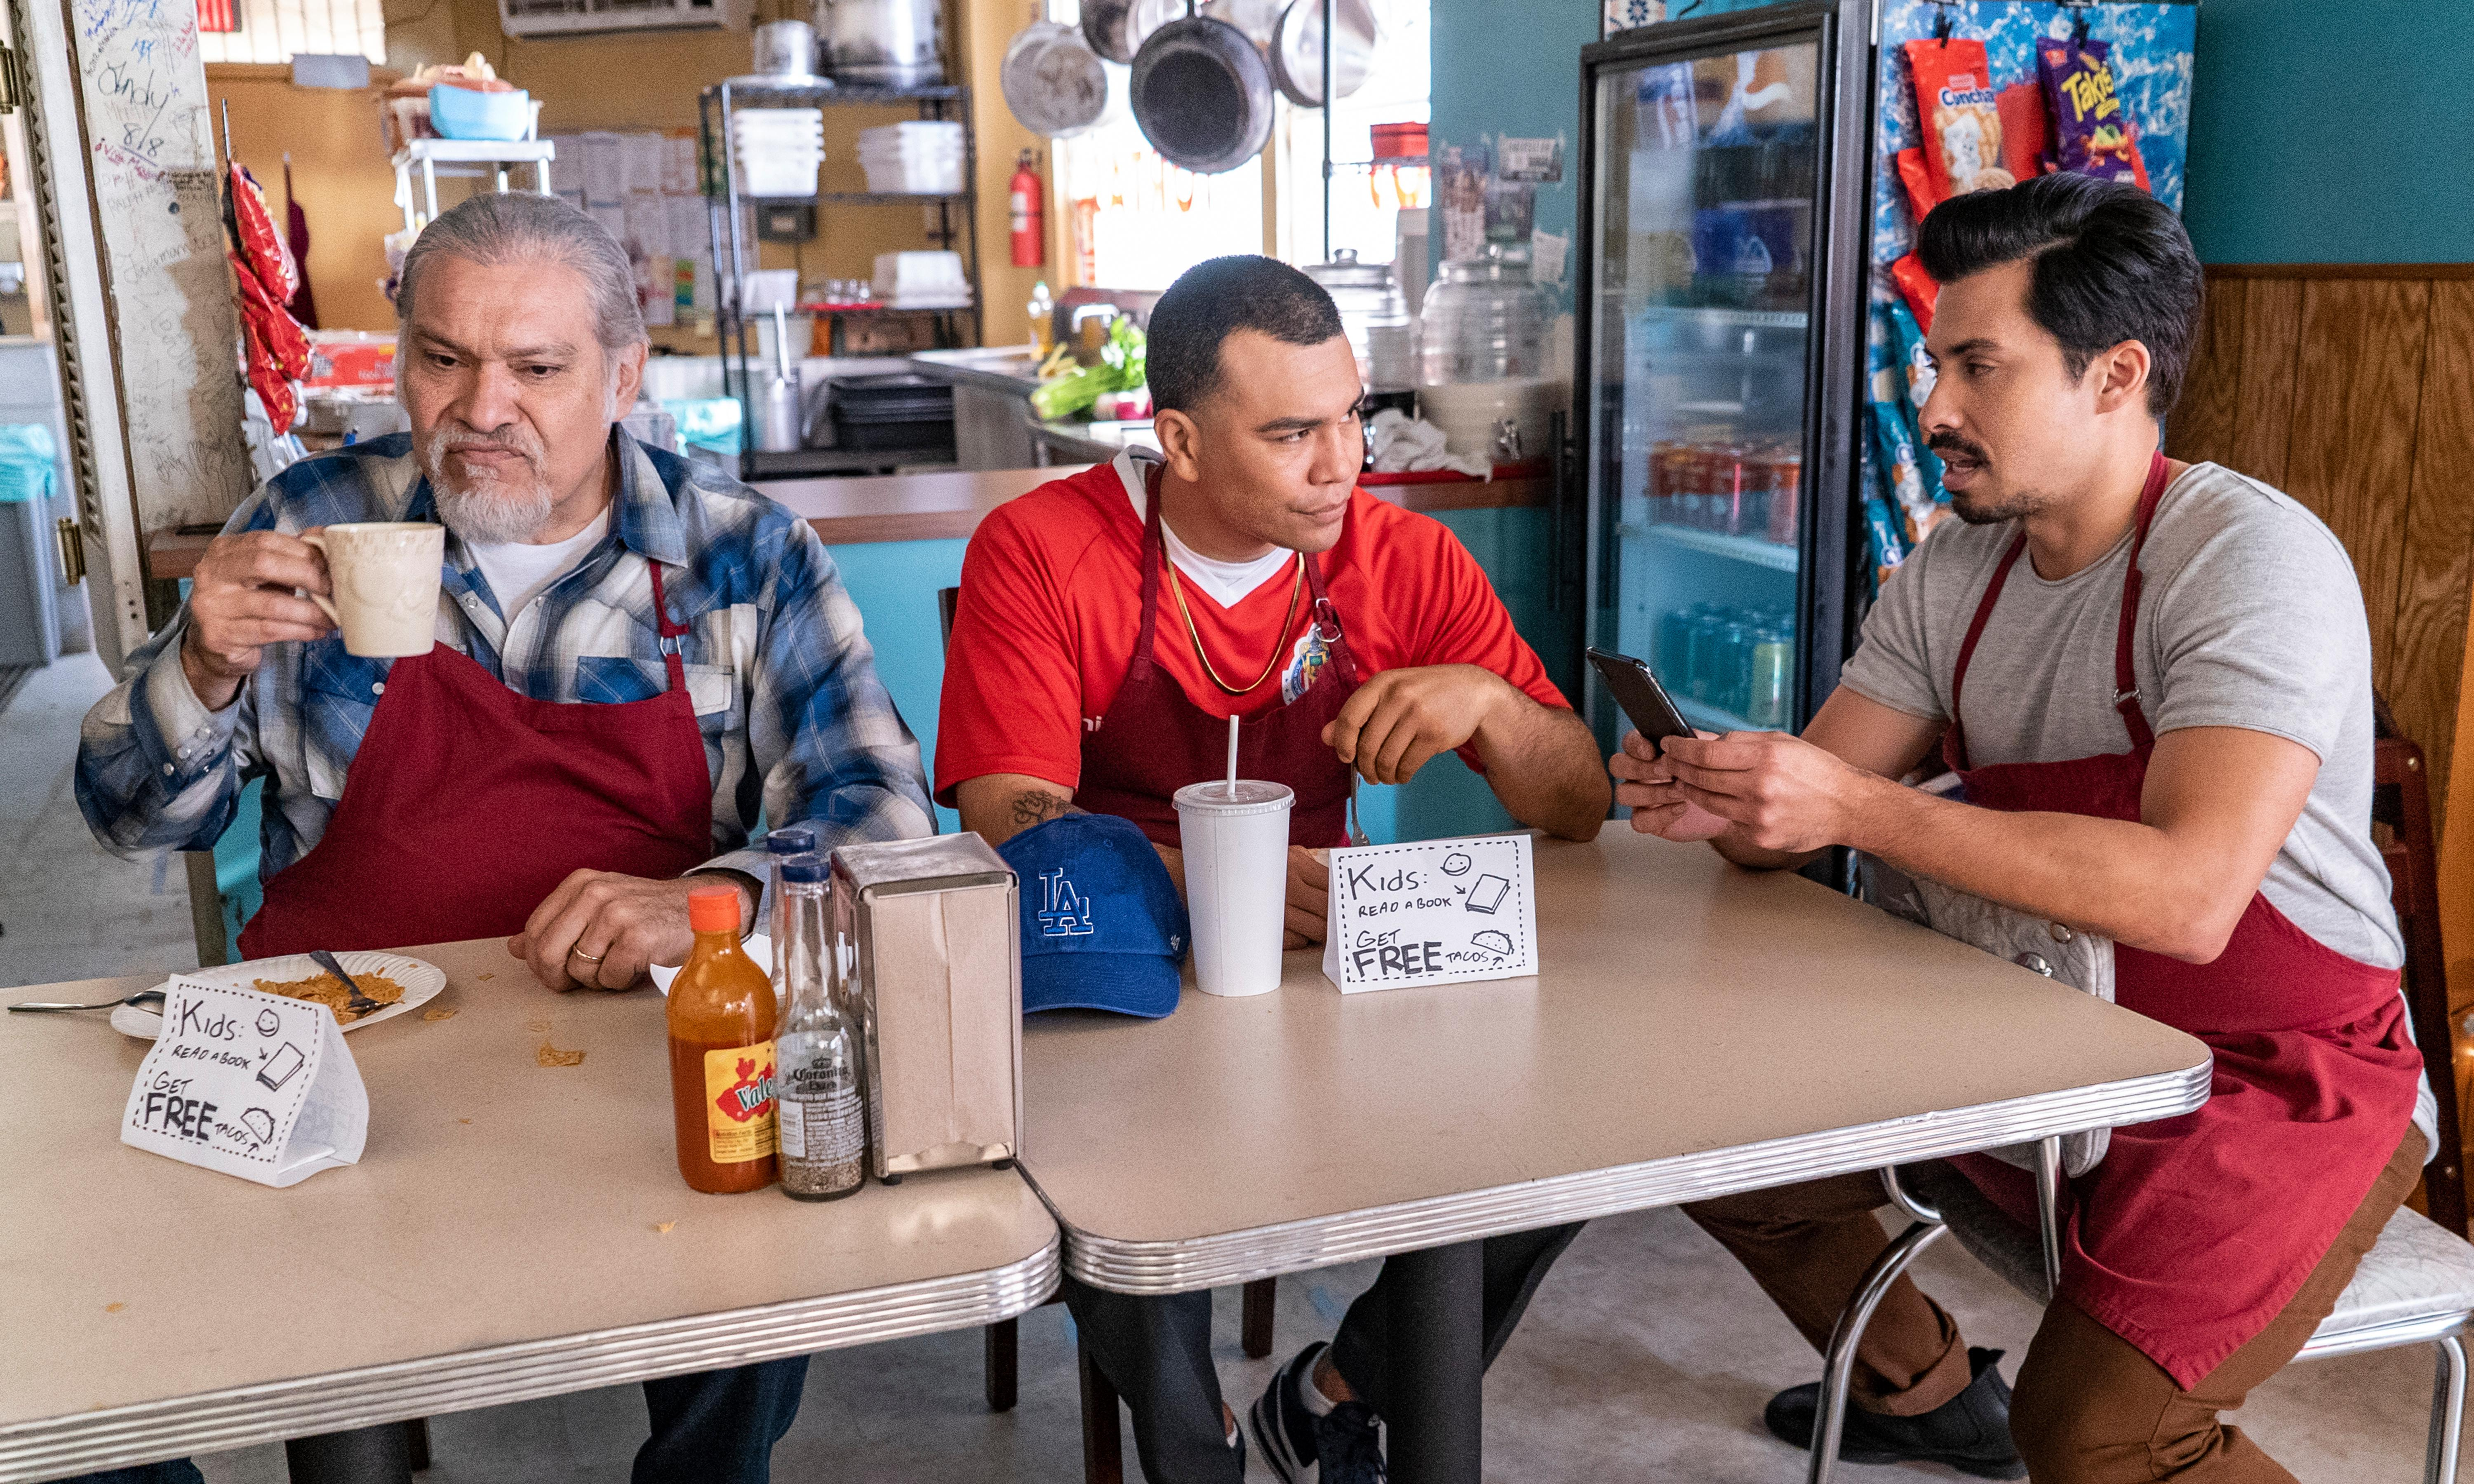 Foodie tourism and protests: LA's gentrification battles play out in Netflix's Gentefied